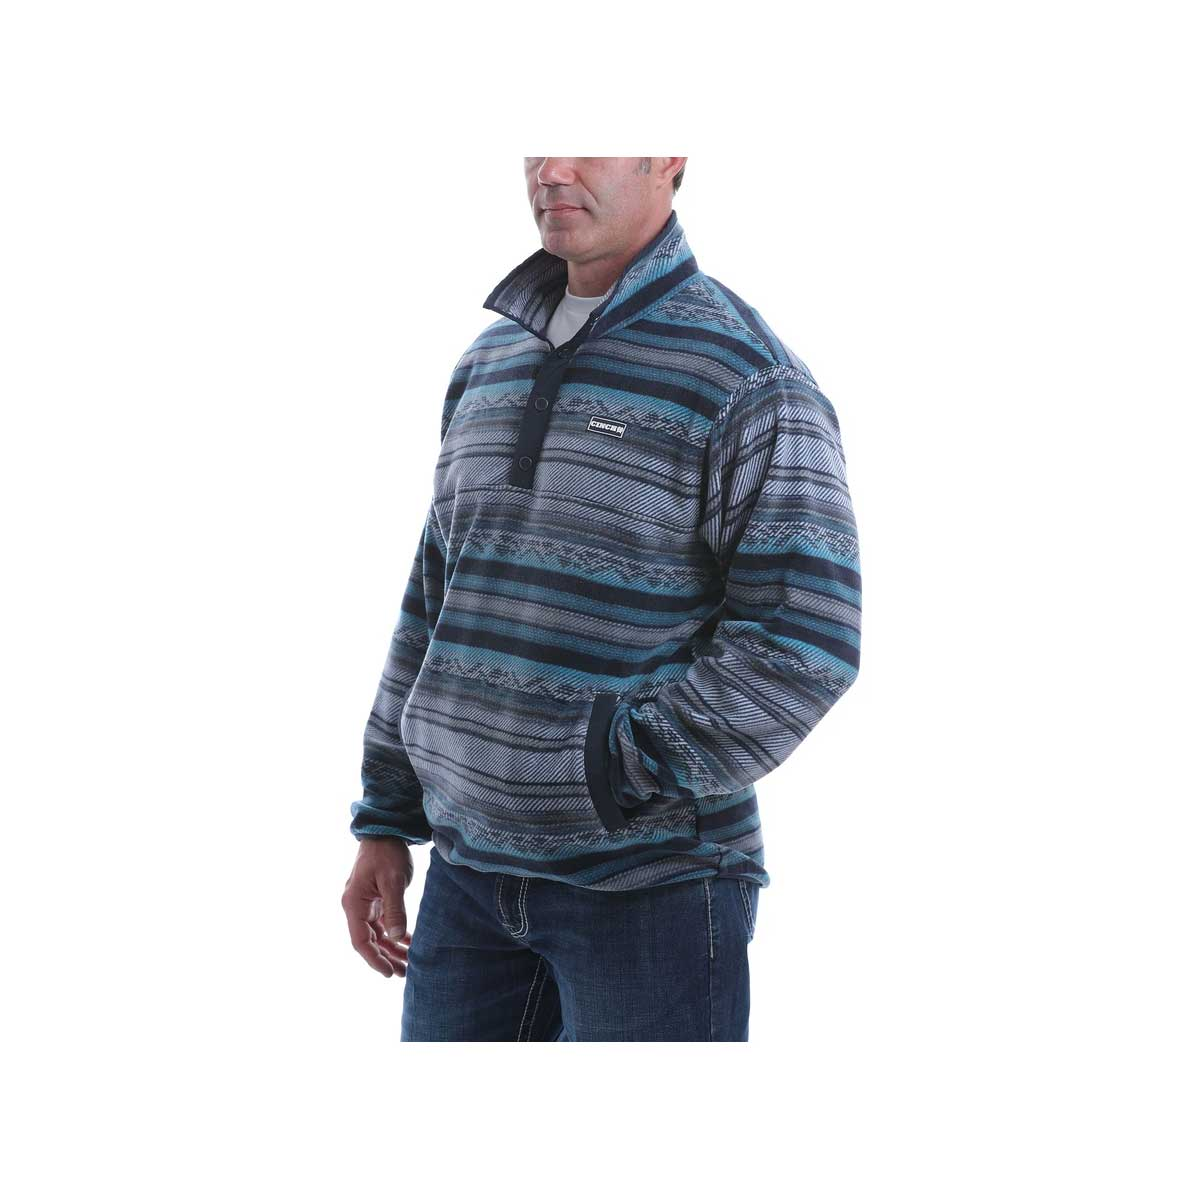 Cinch Men's Polar Fleece Pullover Sweatshirt - Multi Dark Aztec Striped